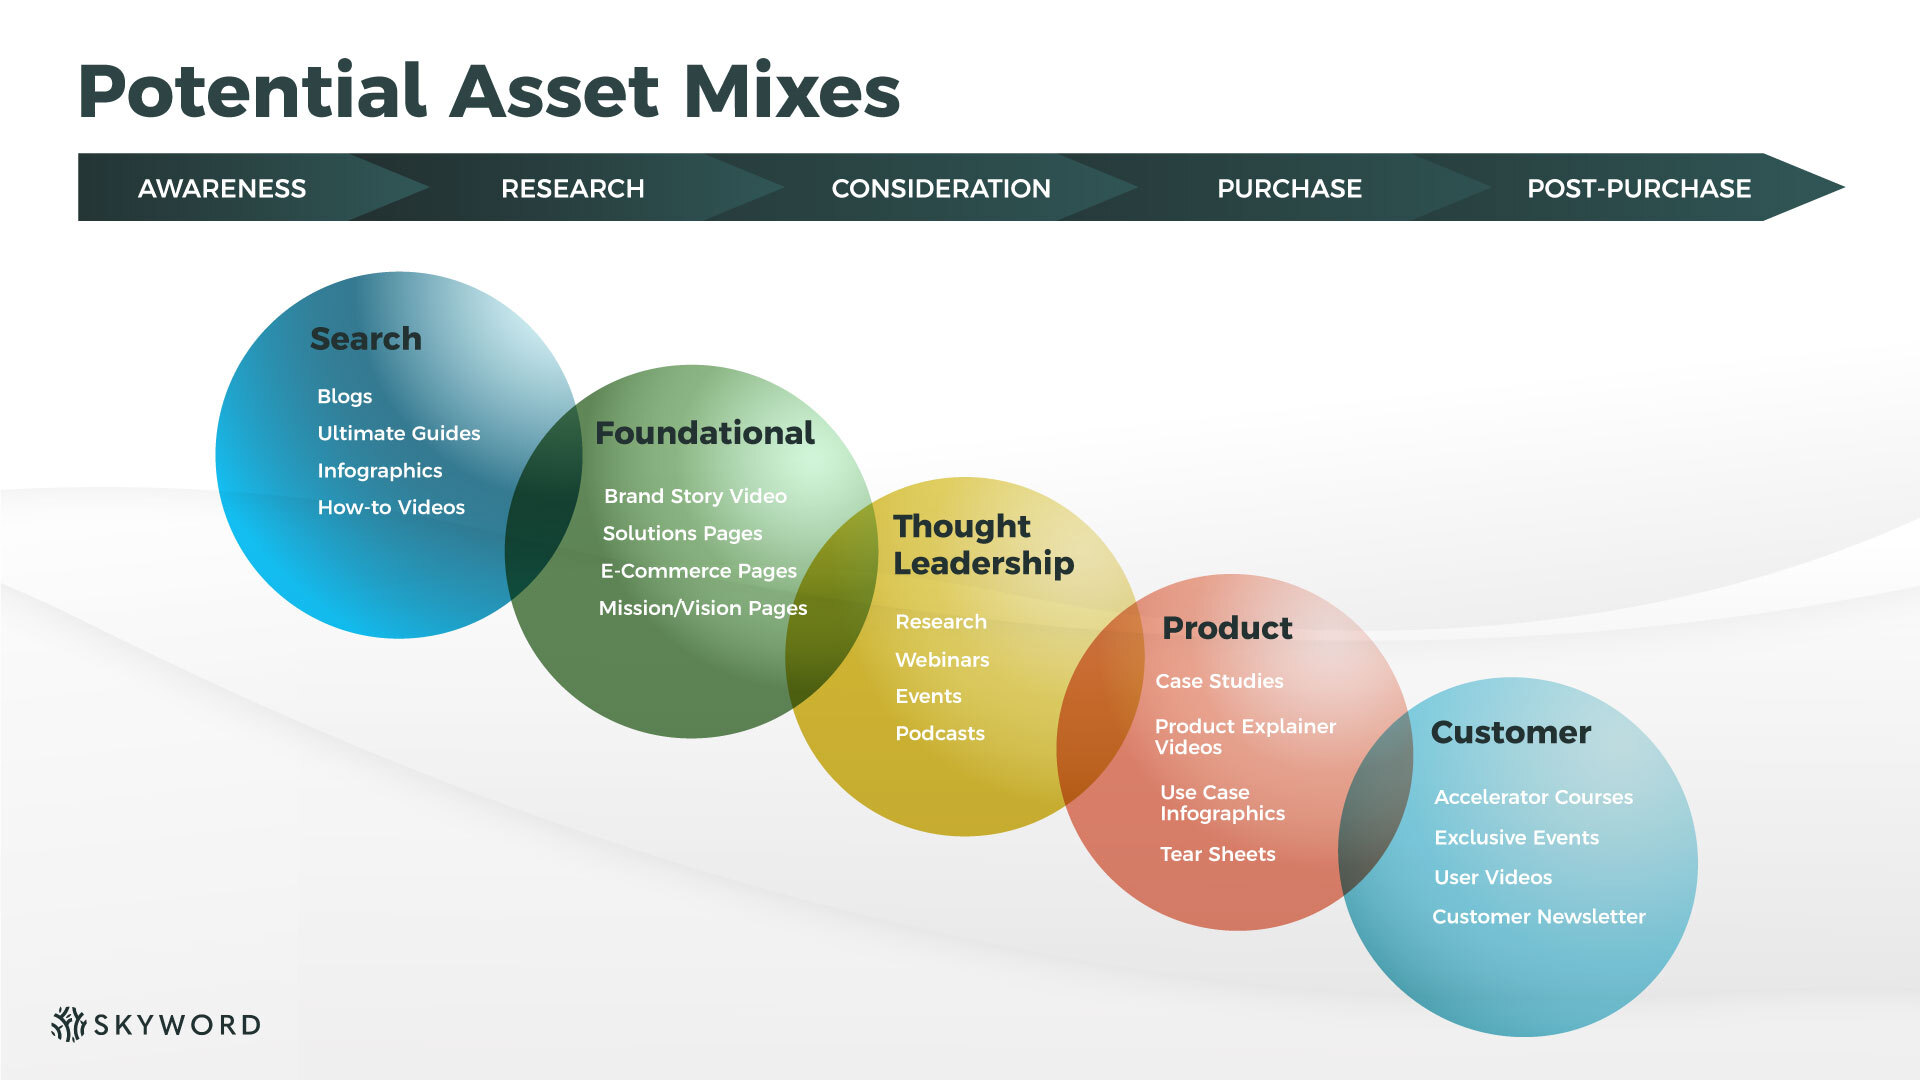 example asset mixes across the funnel